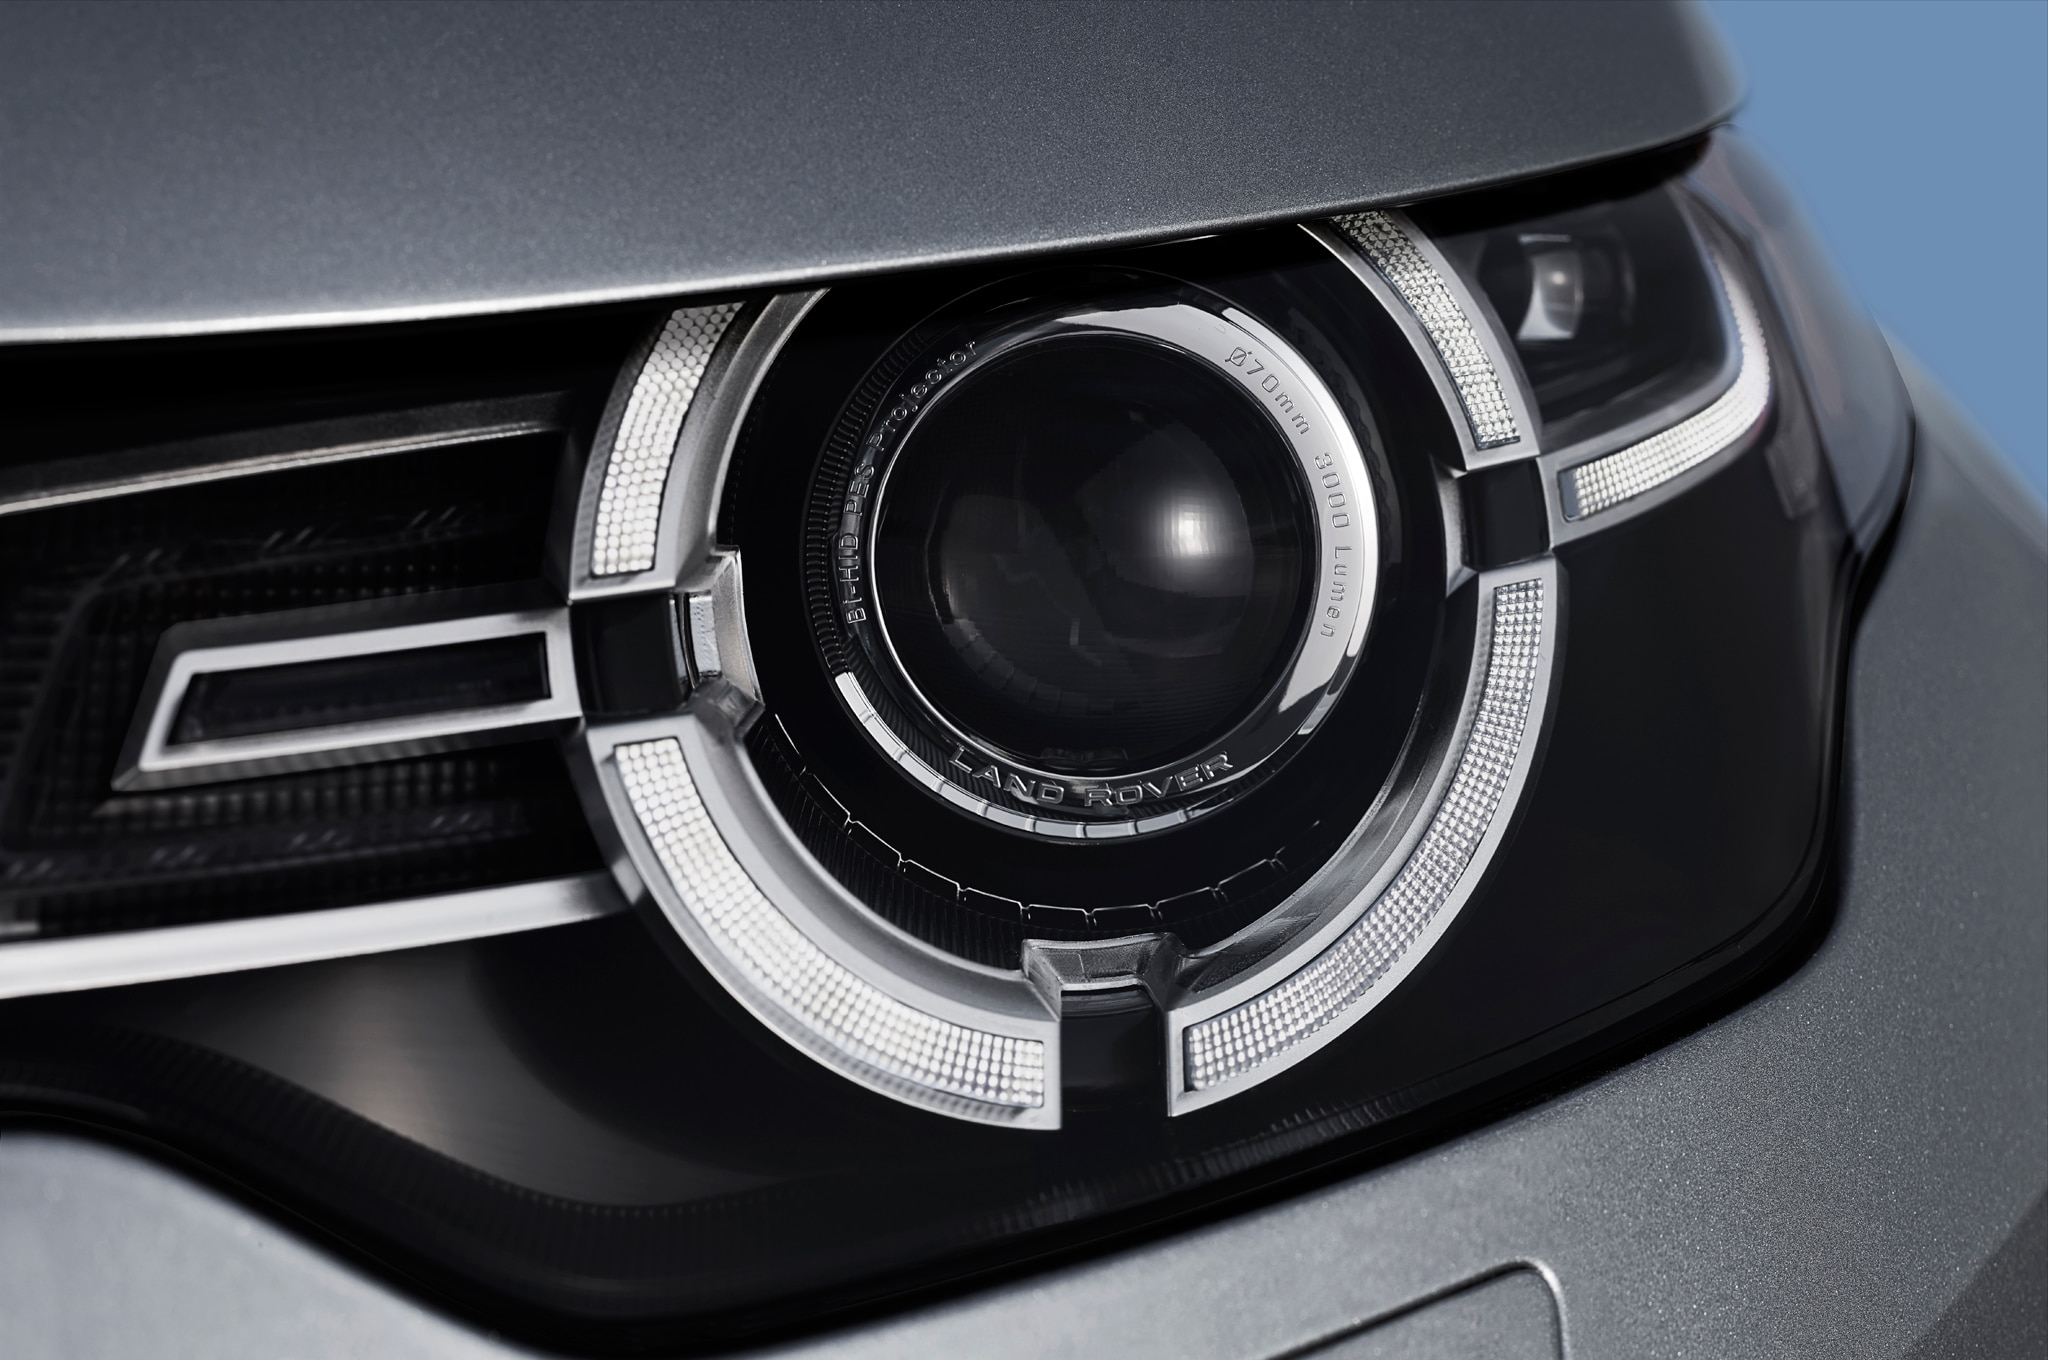 2015 land rover discovery sport review 2015 Land Rover Discovery Sport  headlamp1 2015 land rover discovery sport review Fog Light Wiring Diagram